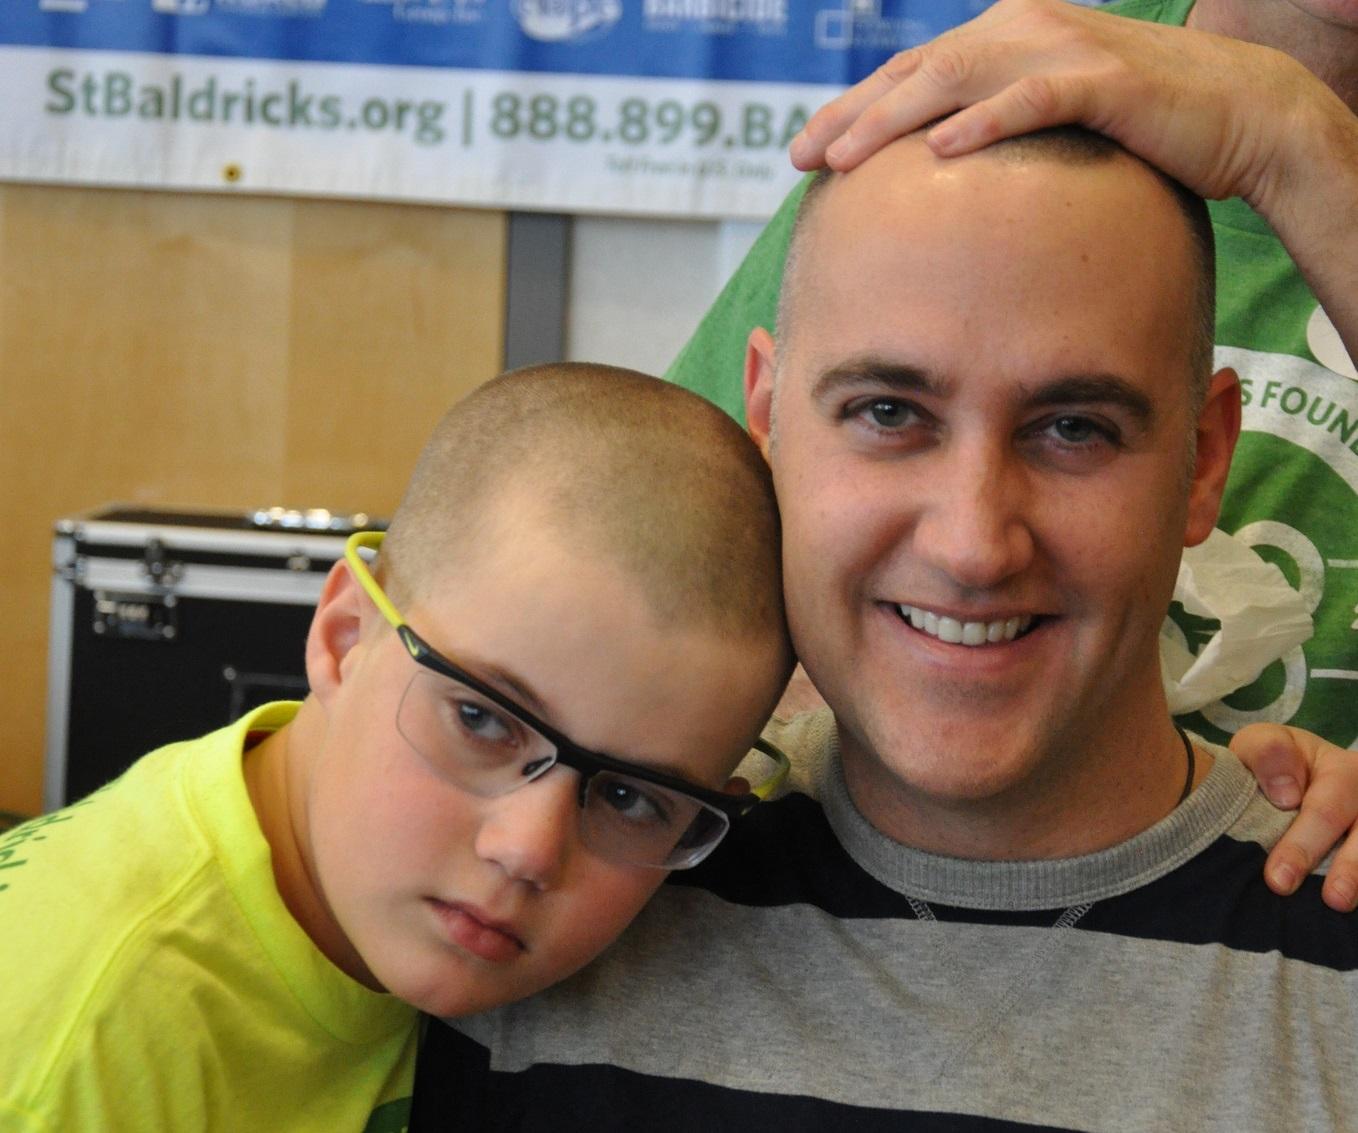 Bald father and son